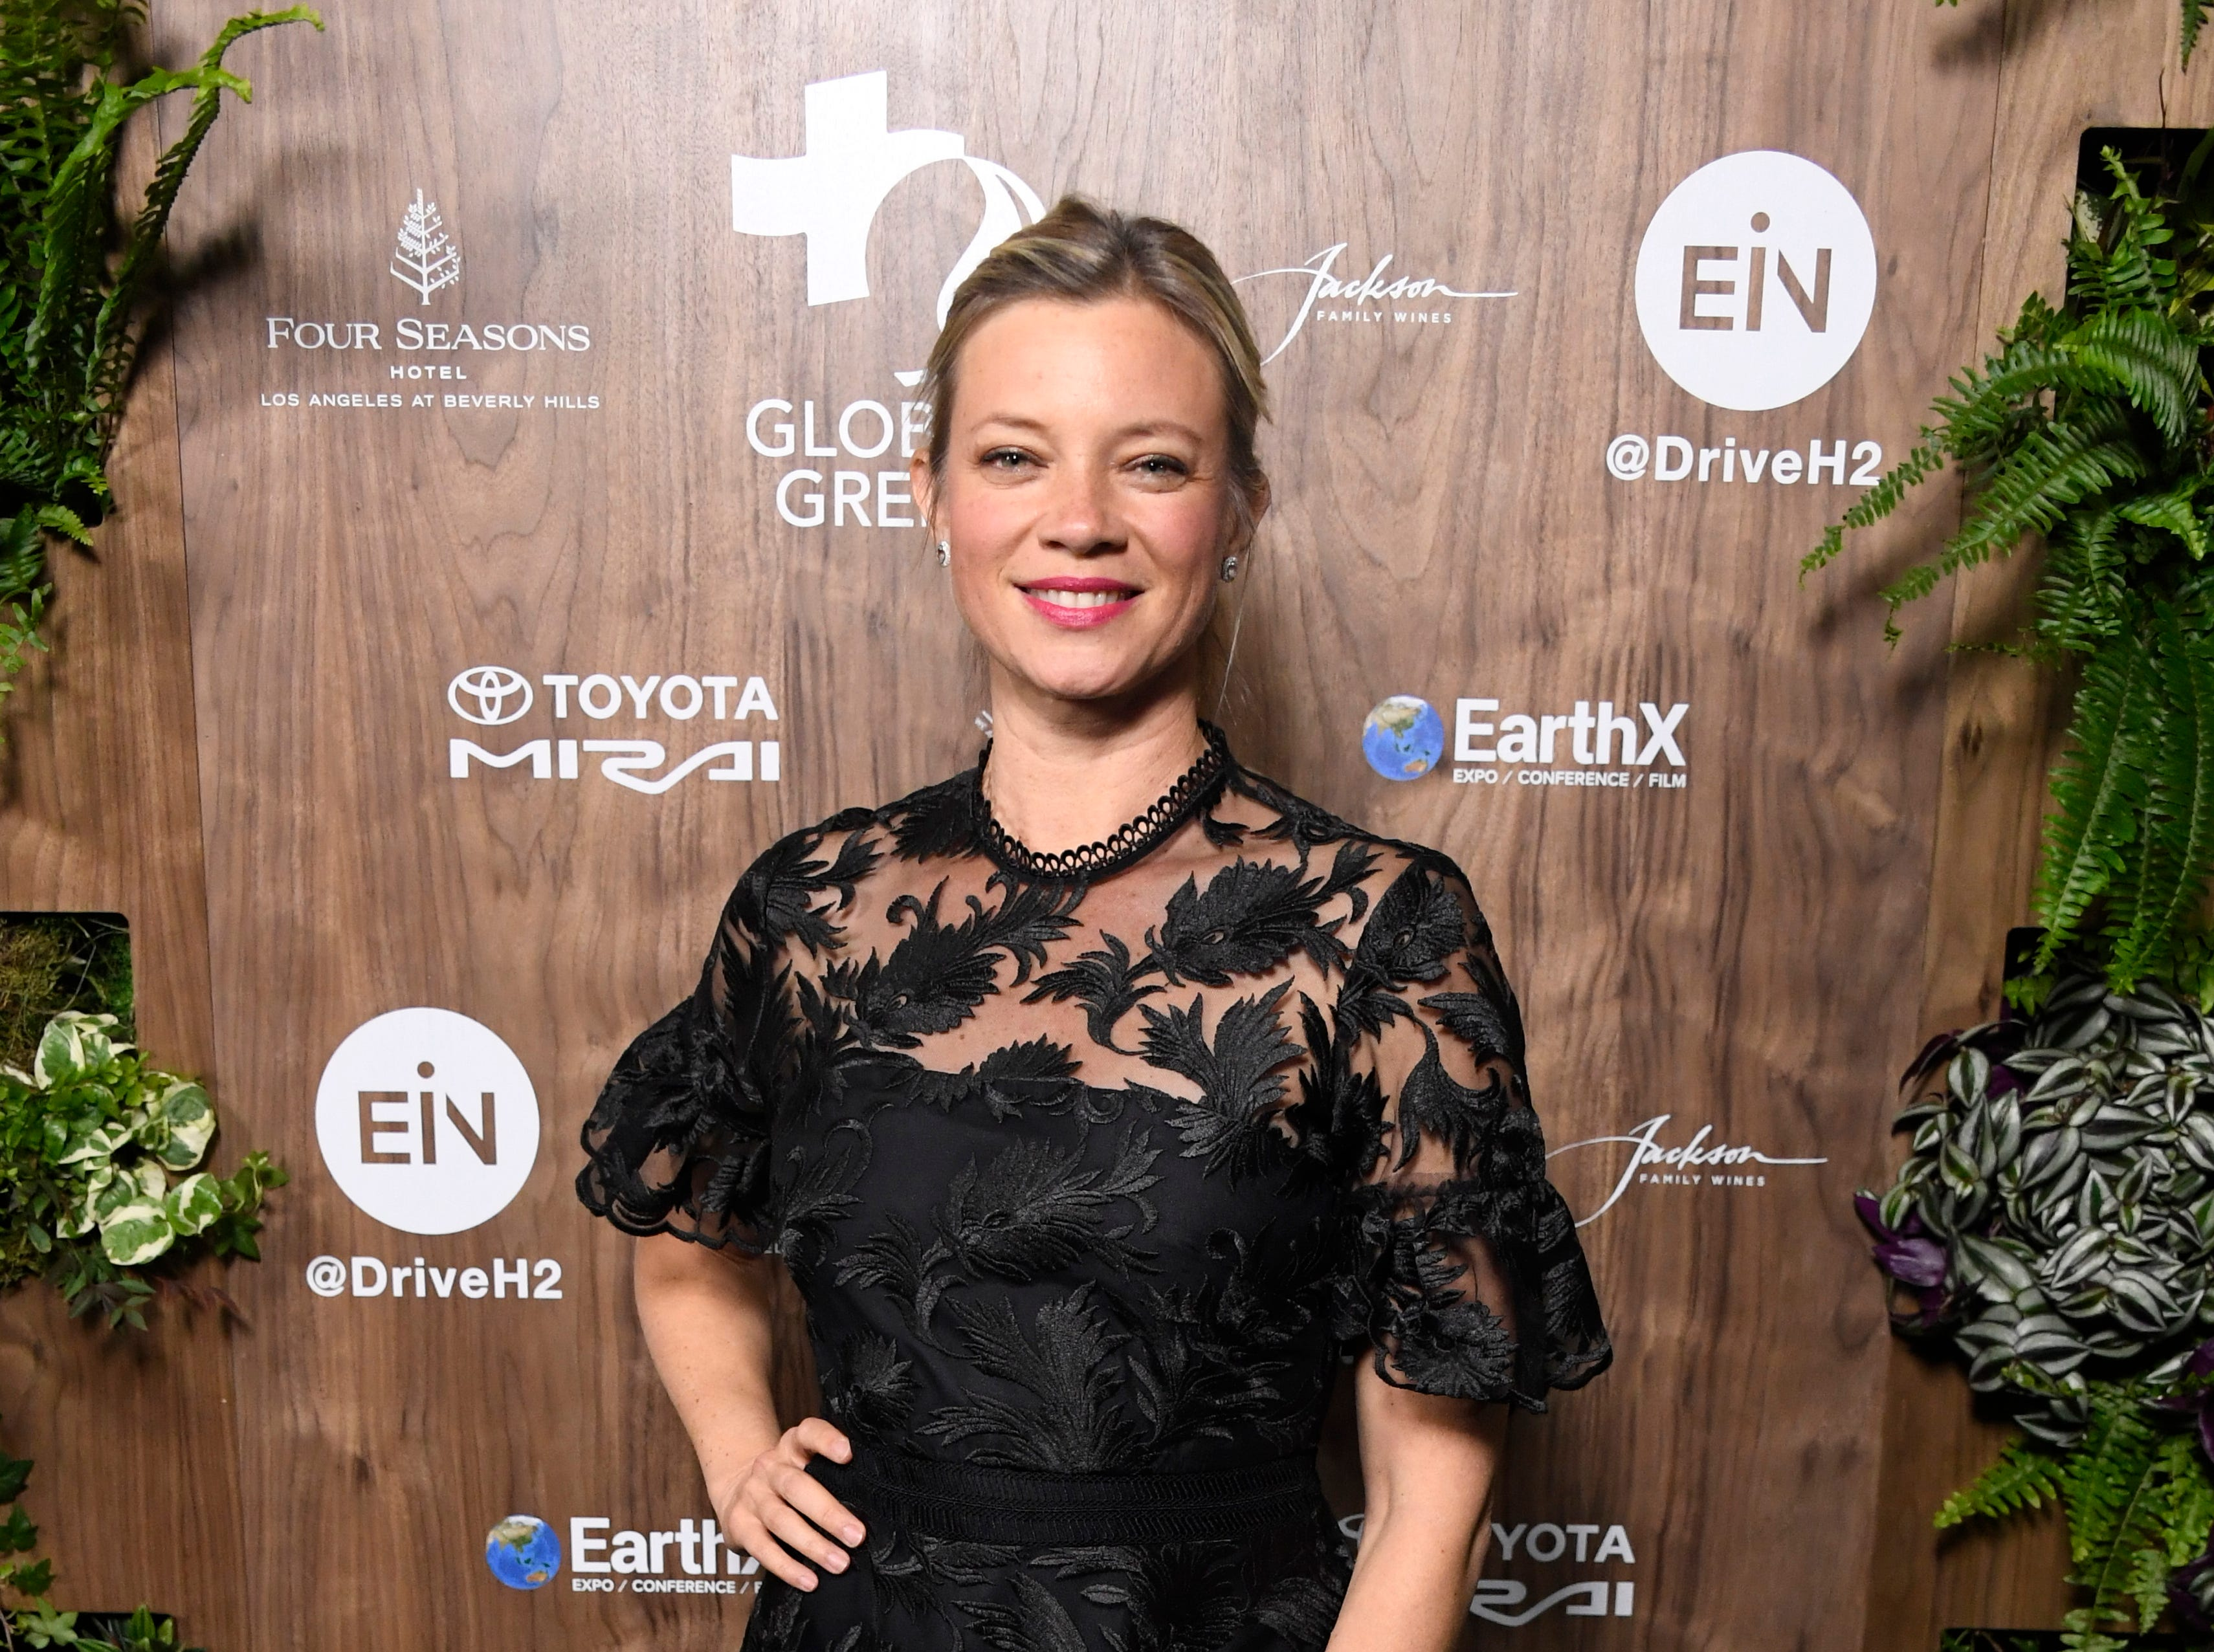 LOS ANGELES, CALIFORNIA - FEBRUARY 20:  Amy Smart attends the Global Green 2019 Pre-Oscar Gala  at Four Seasons Hotel Los Angeles at Beverly Hills on February 20, 2019 in Los Angeles, California. (Photo by Frazer Harrison/Getty Images) ORG XMIT: 775298110 ORIG FILE ID: 1131076818